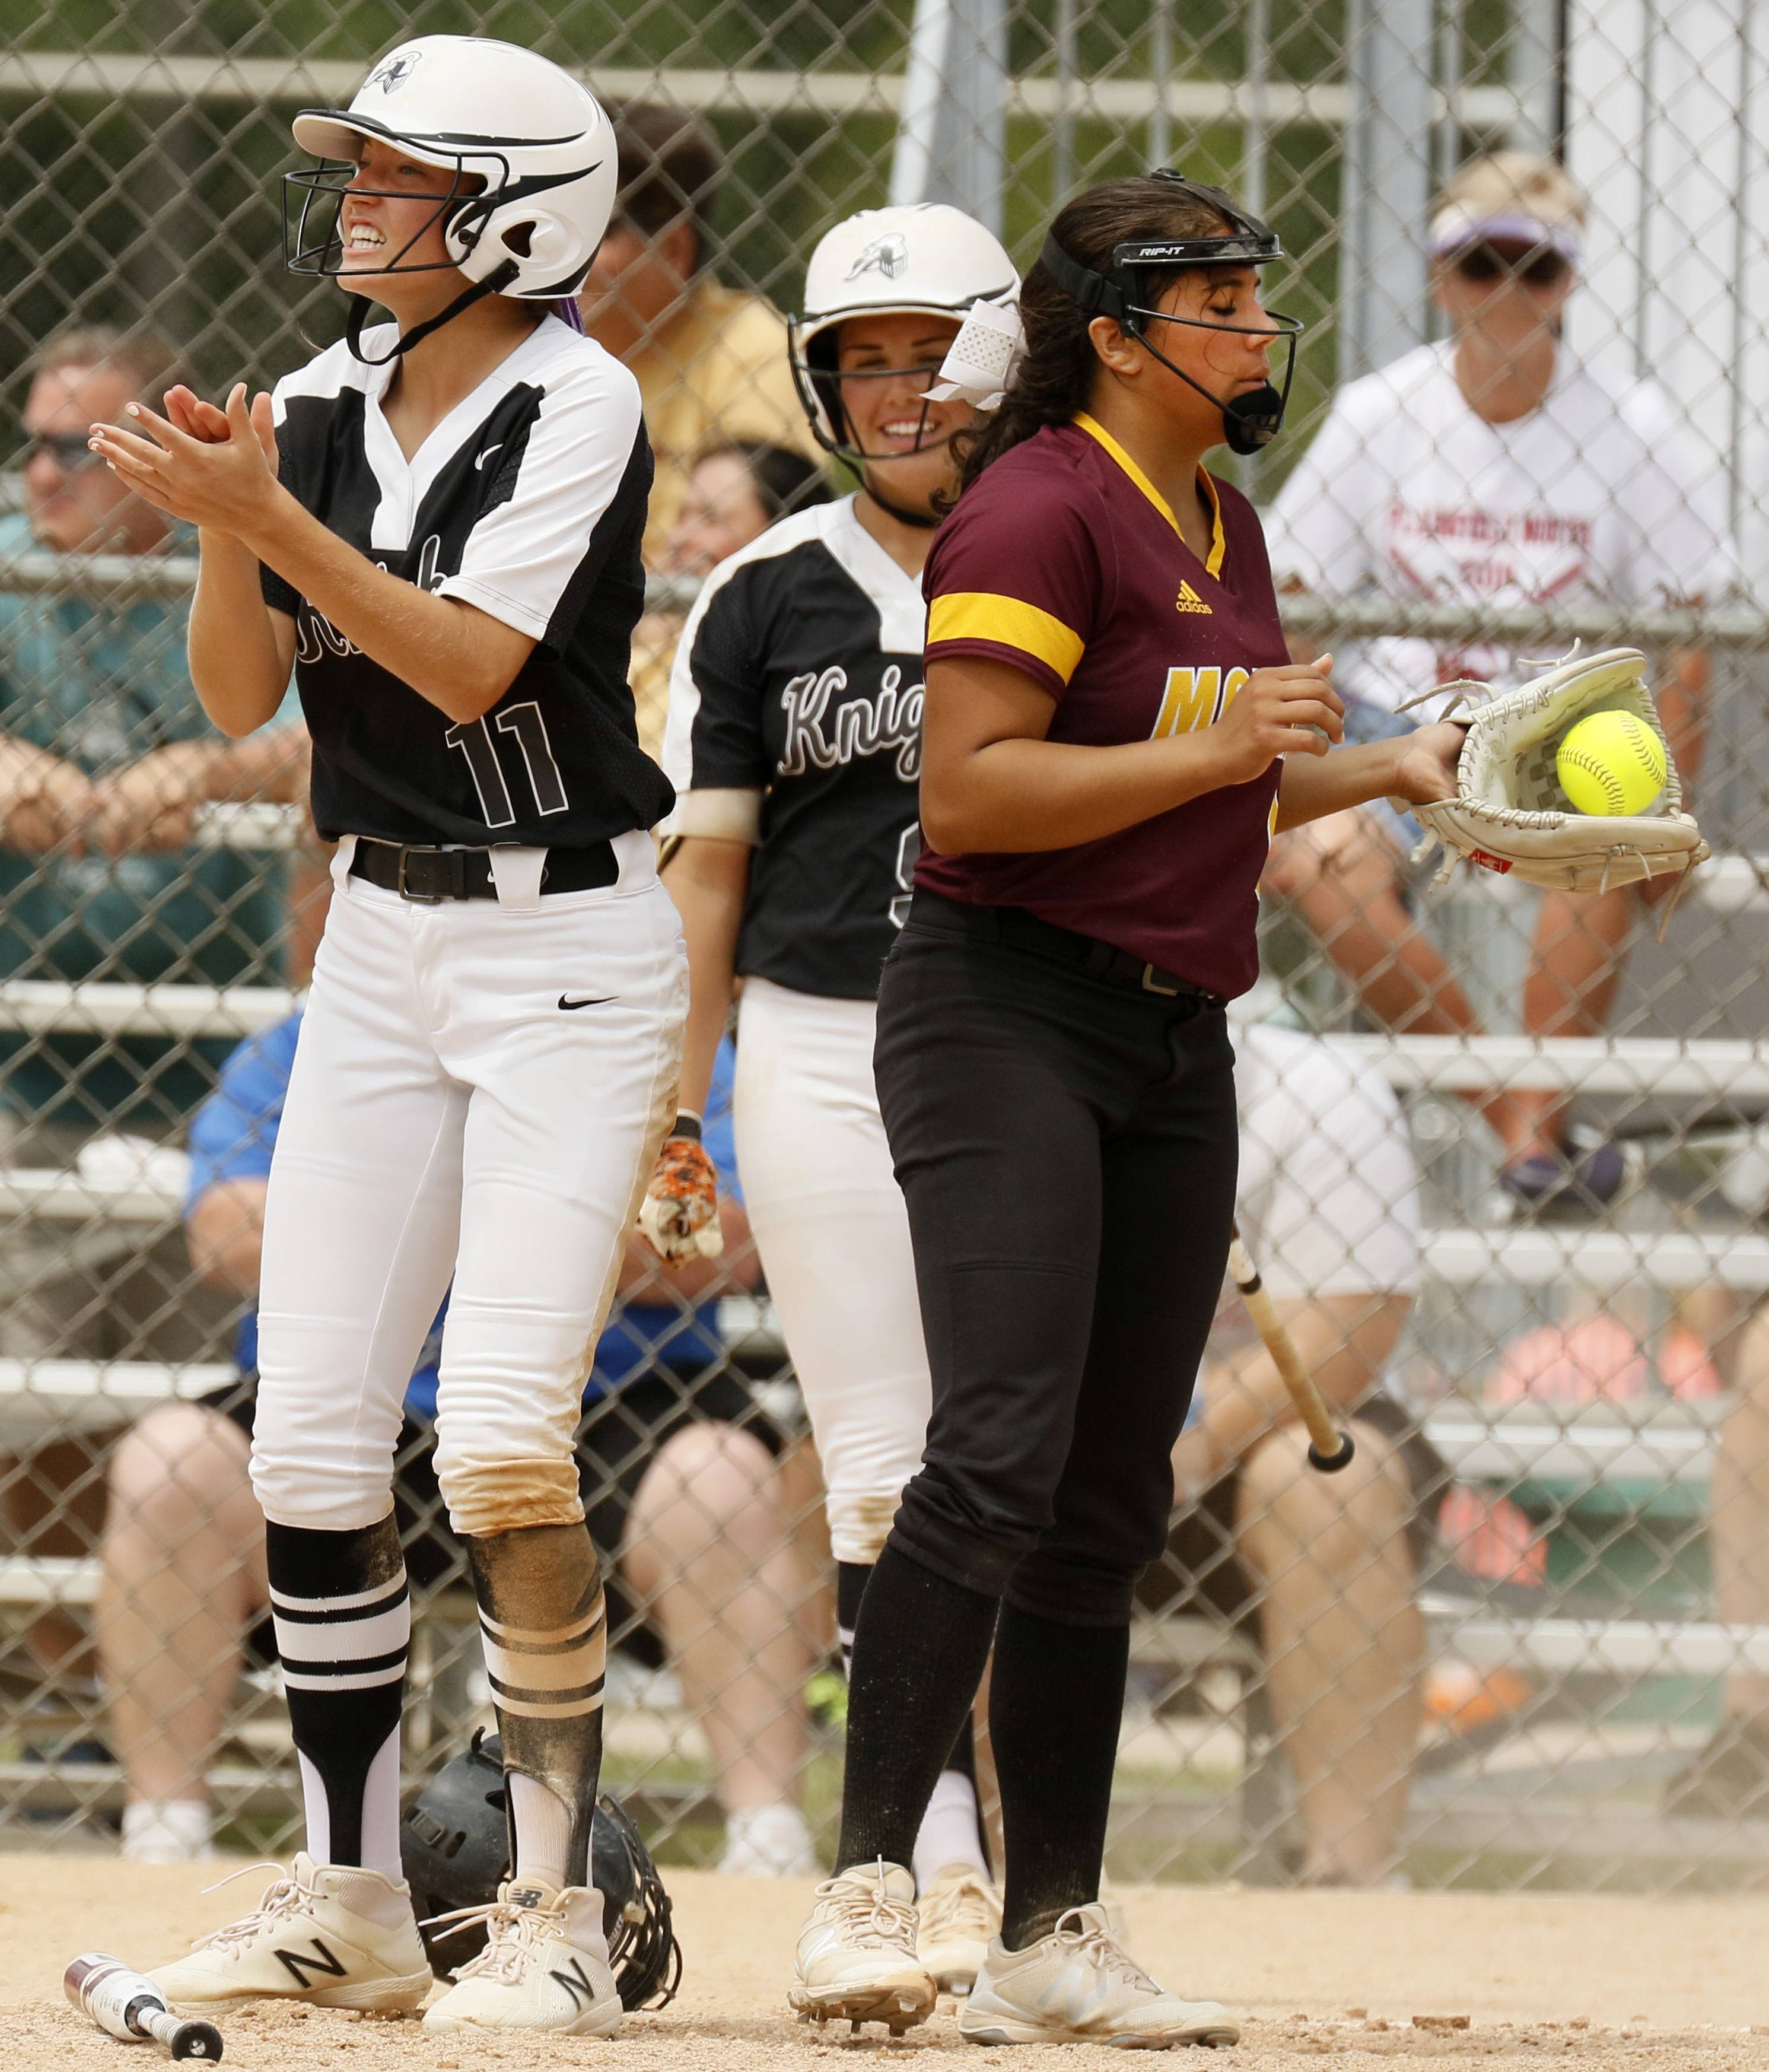 Kaneland's Olivia Ortegel (11) cheers after scoring due to an error by the Montini Catholic defense at the IHSA Class 3A state softball championship. Montini's Brianna Clifton, right, holds the ball.